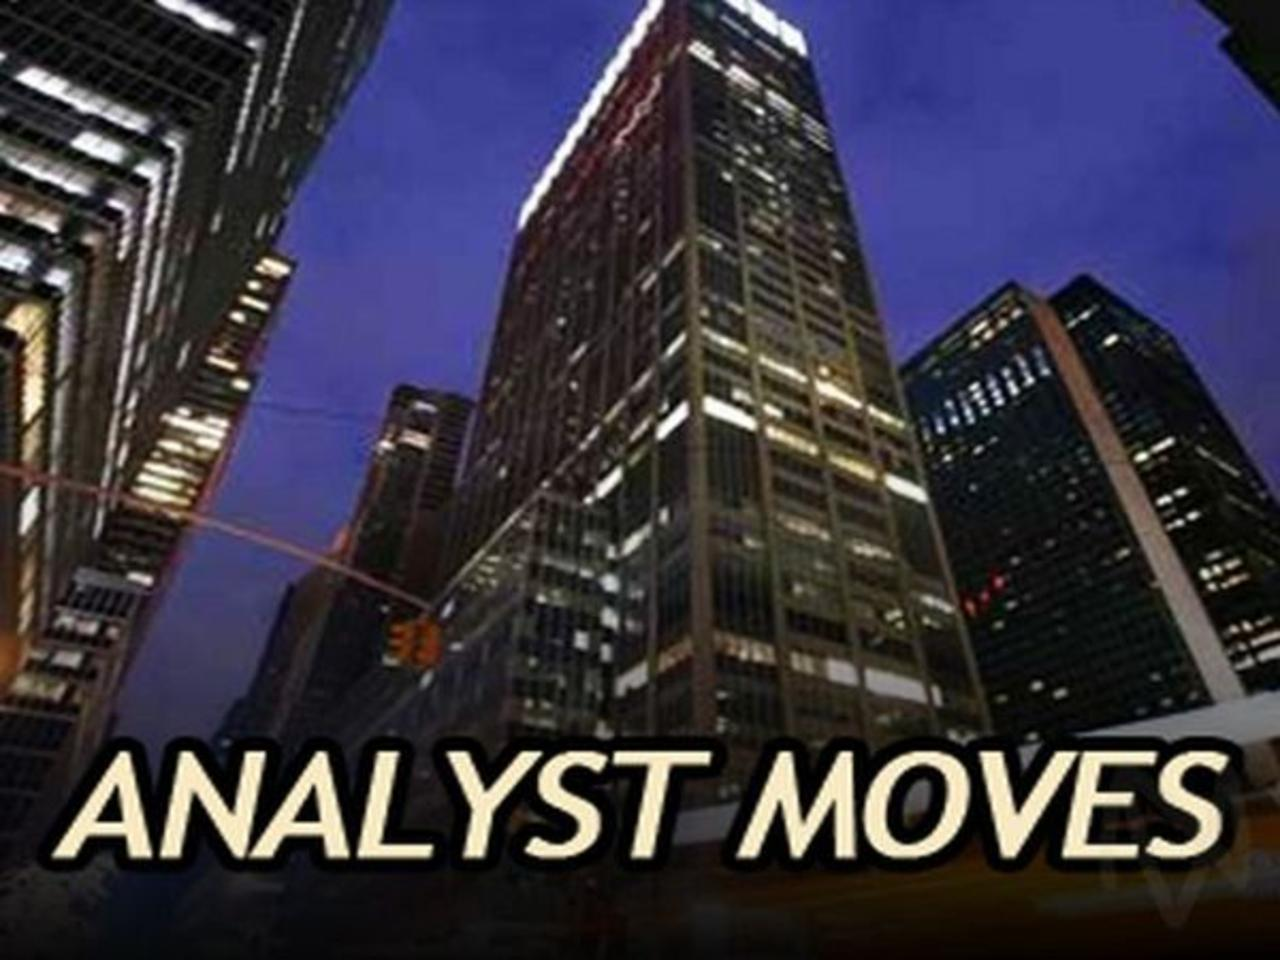 Dow Analyst Moves: CSCO